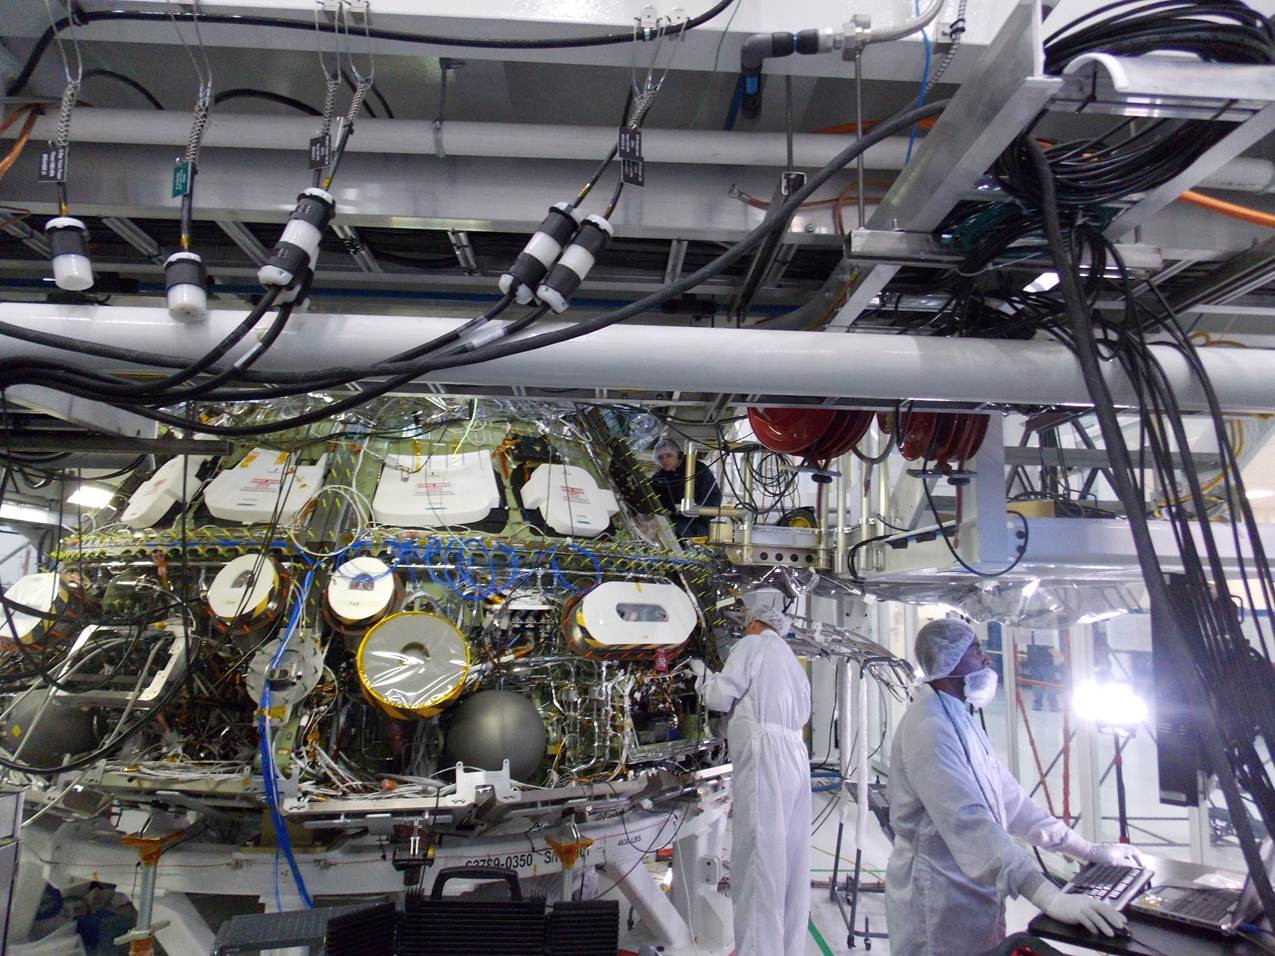 NASA's Orion Spacecraft Powers through First Integrated System Testing